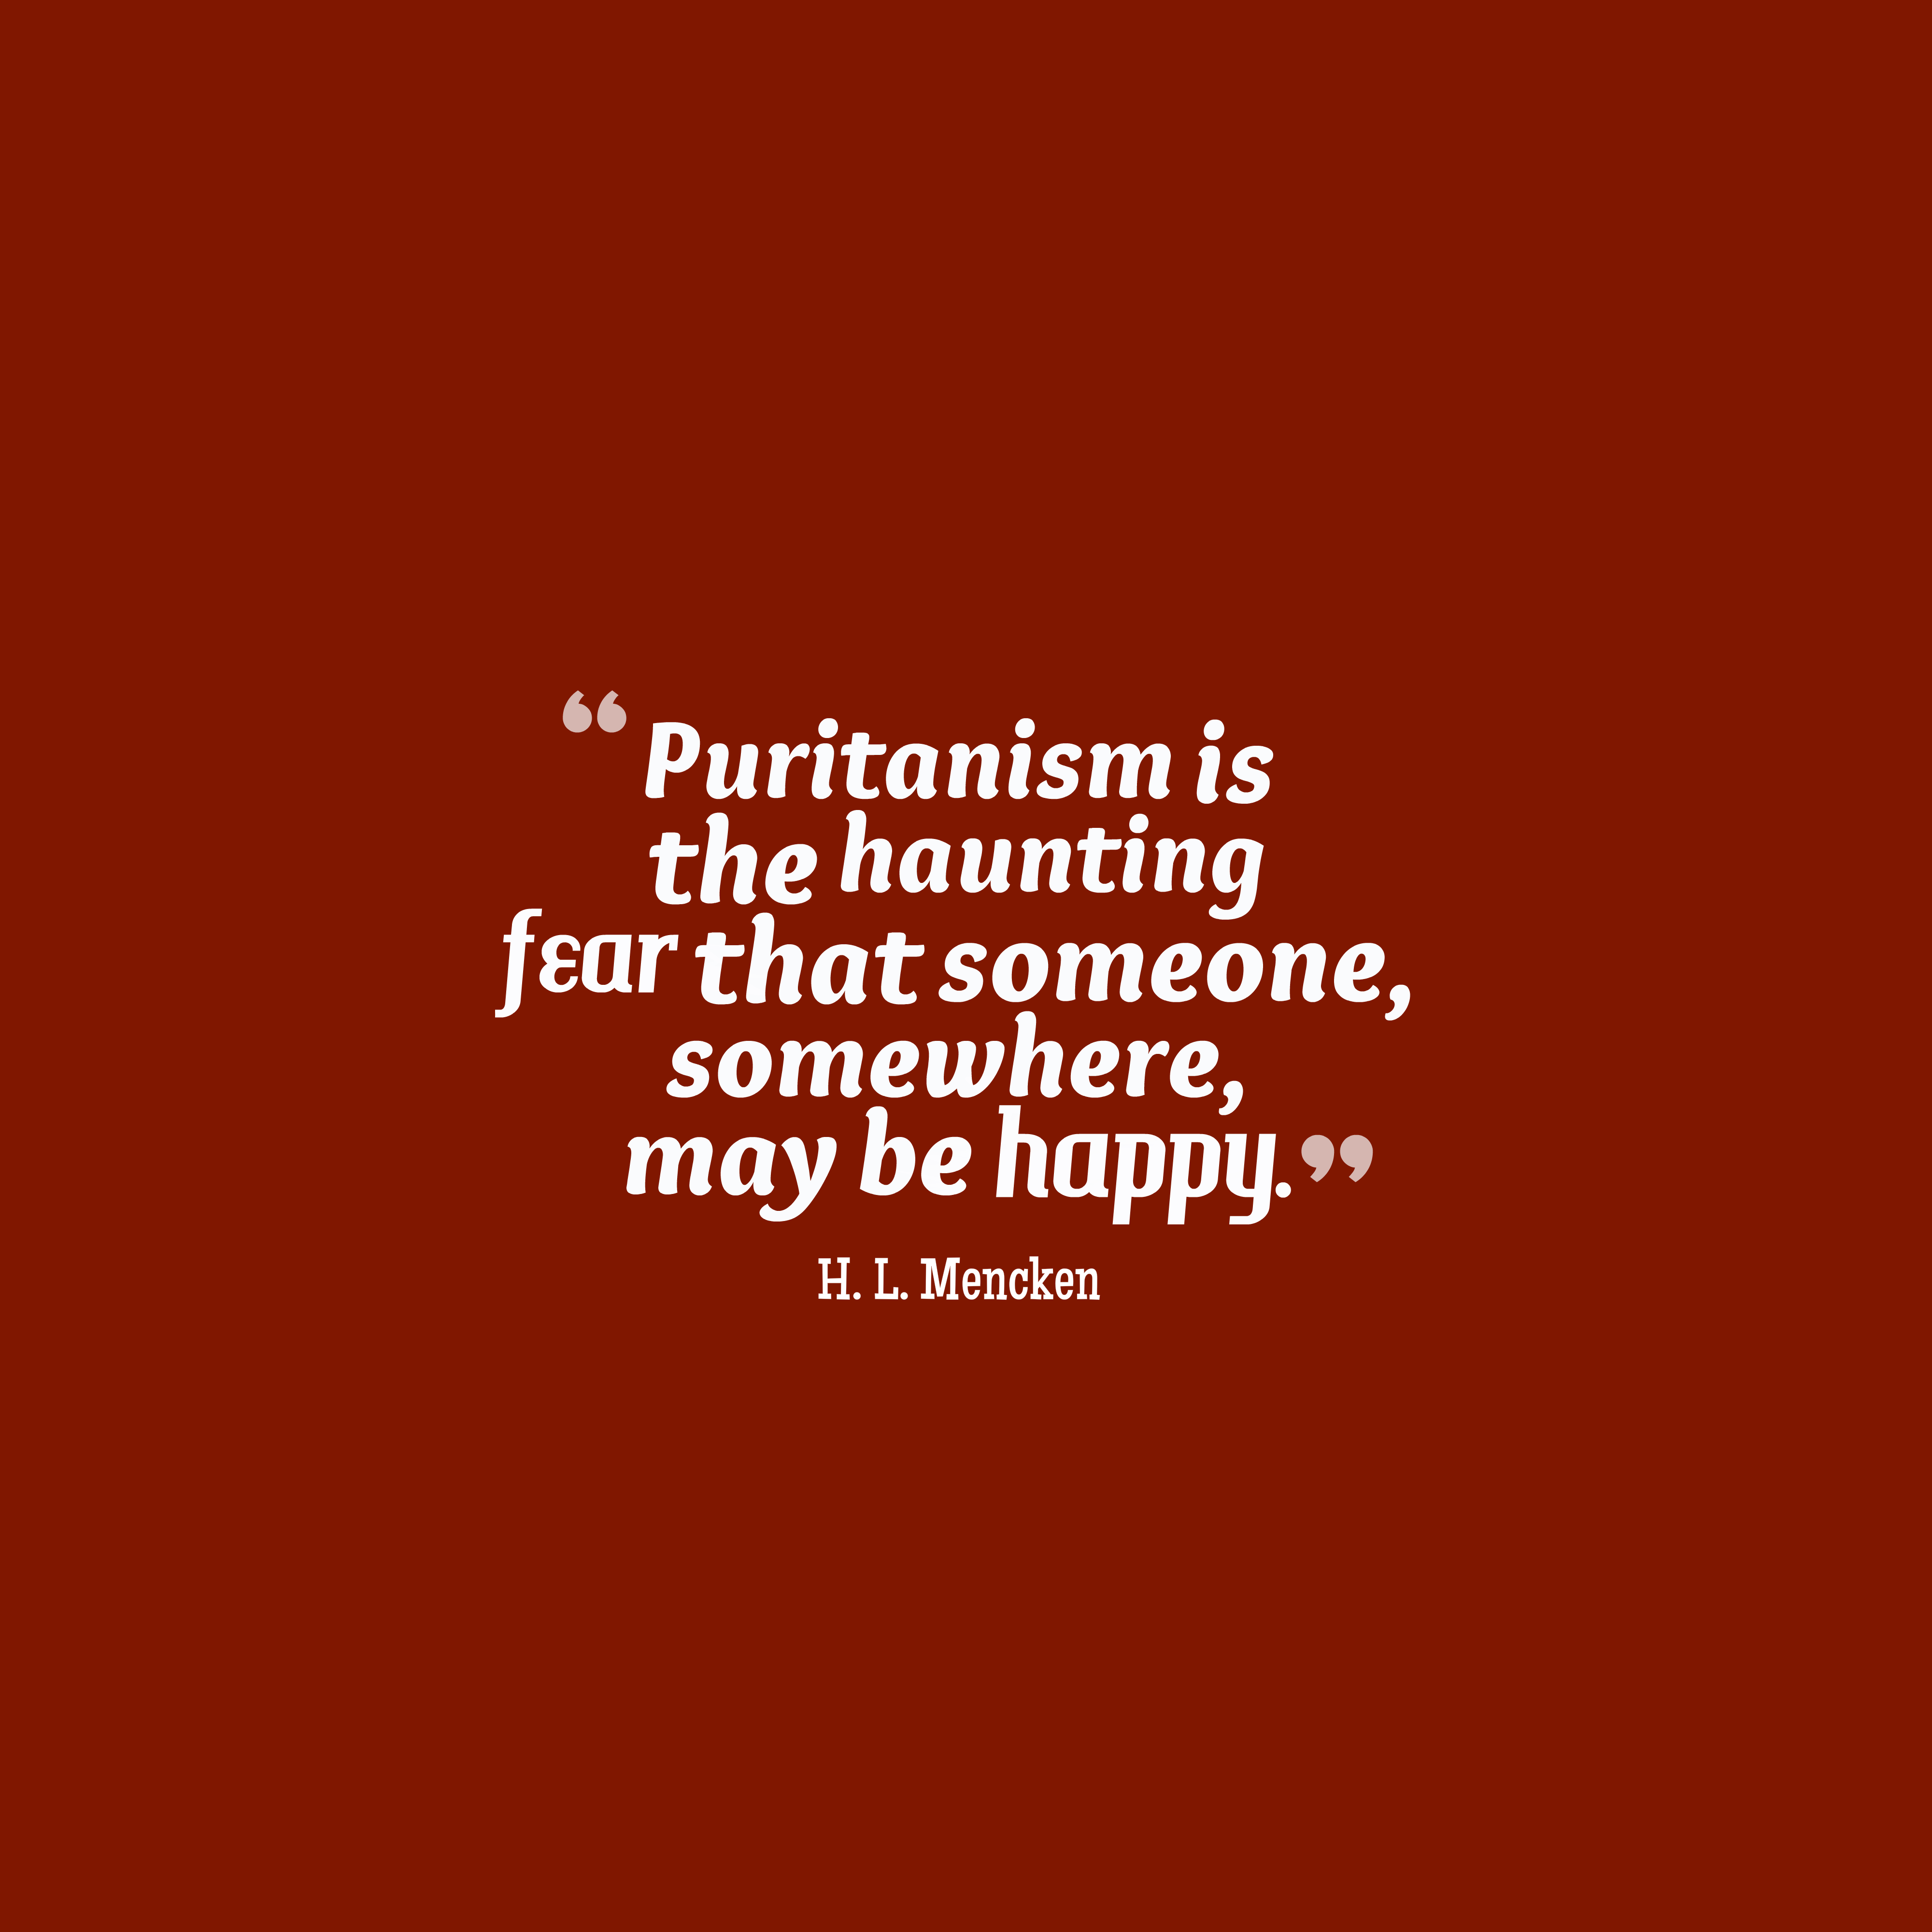 Quotes image of Puritanism is the haunting fear that someone, somewhere, may be happy.